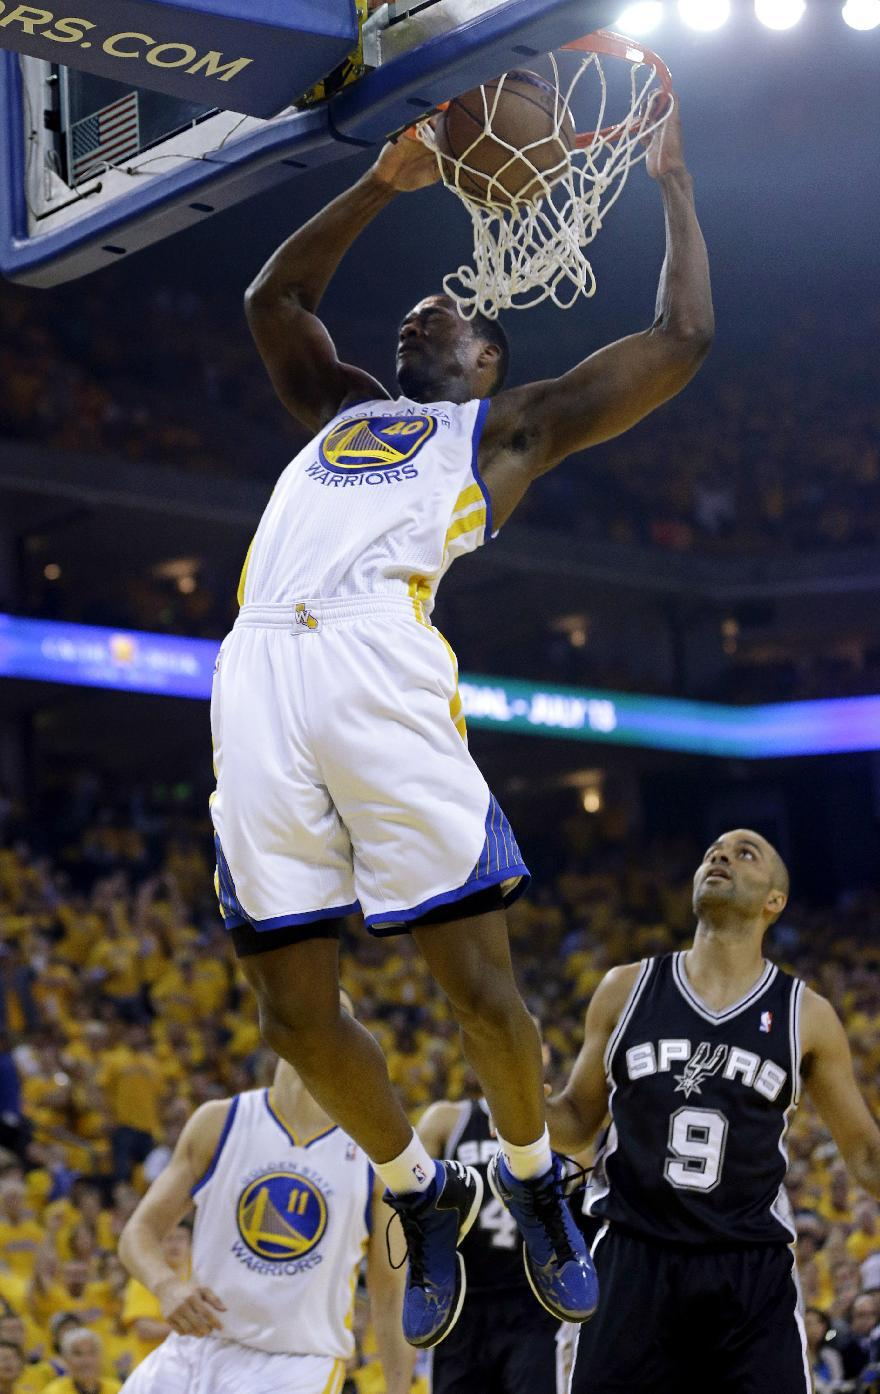 Golden State Warriors forward Harrison Barnes (40) dunks against the San Antonio Spurs in the first quarter of Game 6 of a Western Conference semifinal NBA basketball playoff series in Oakland, Calif., Thursday, May 16, 2013. (AP Photo/Marcio Jose Sanchez)